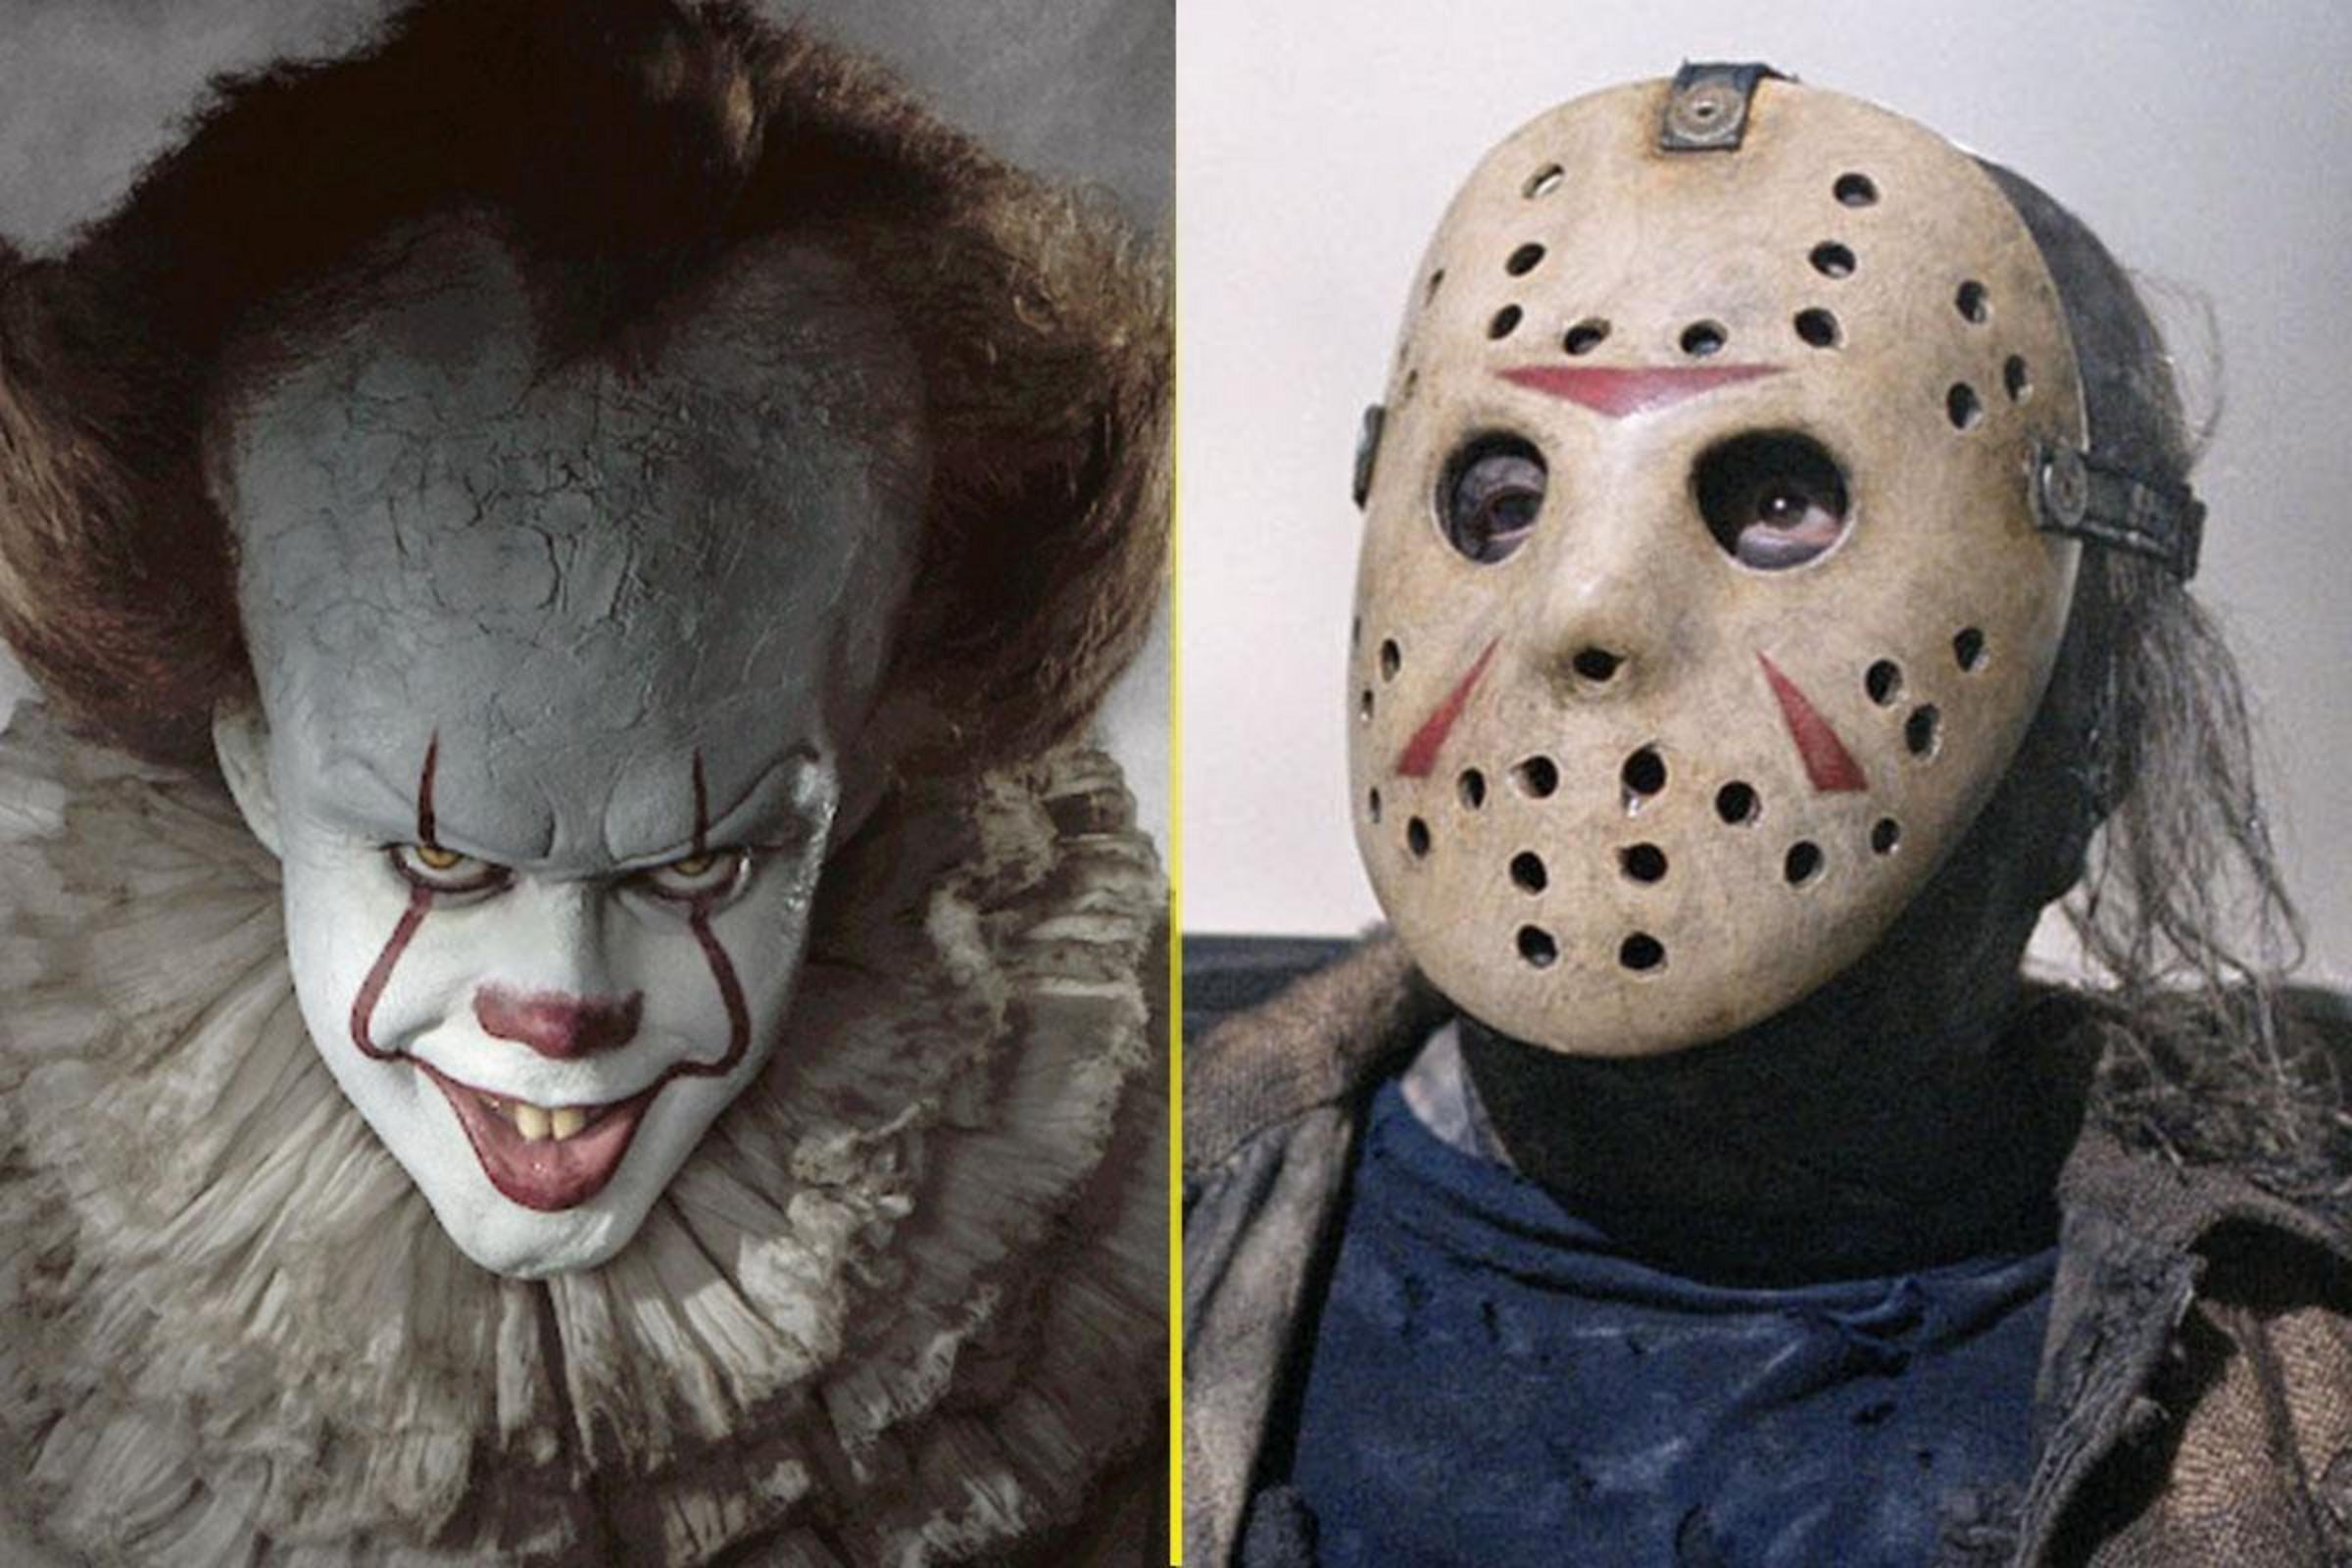 Scariest Movie Monster Pennywise Or Jason Voorhees The Tylt